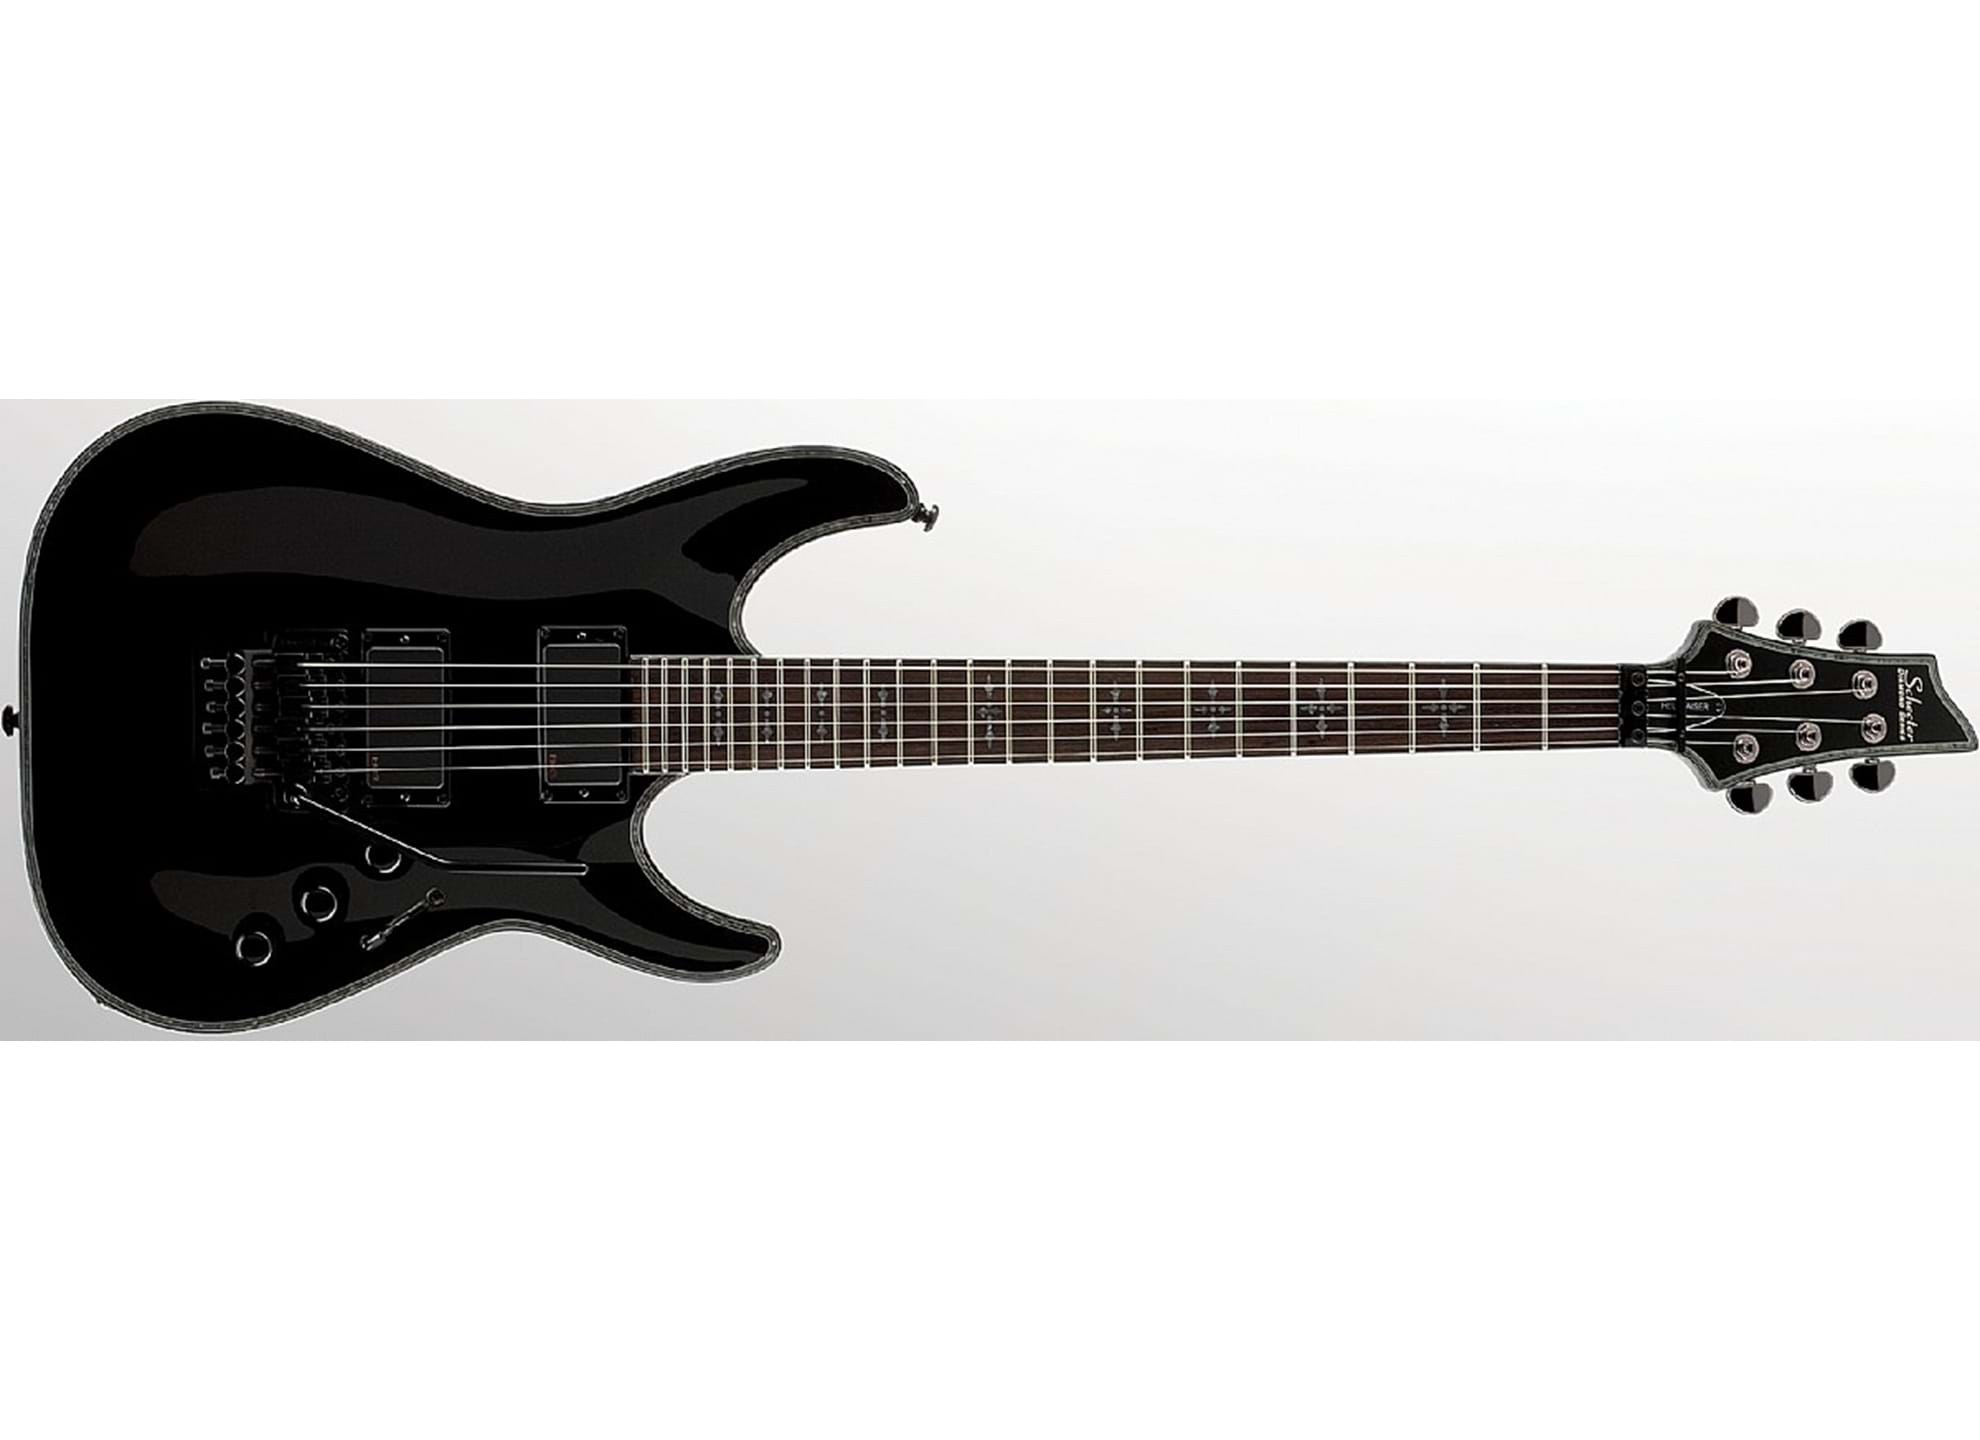 Hellraiser C1 Floyd Rose Gloss Black